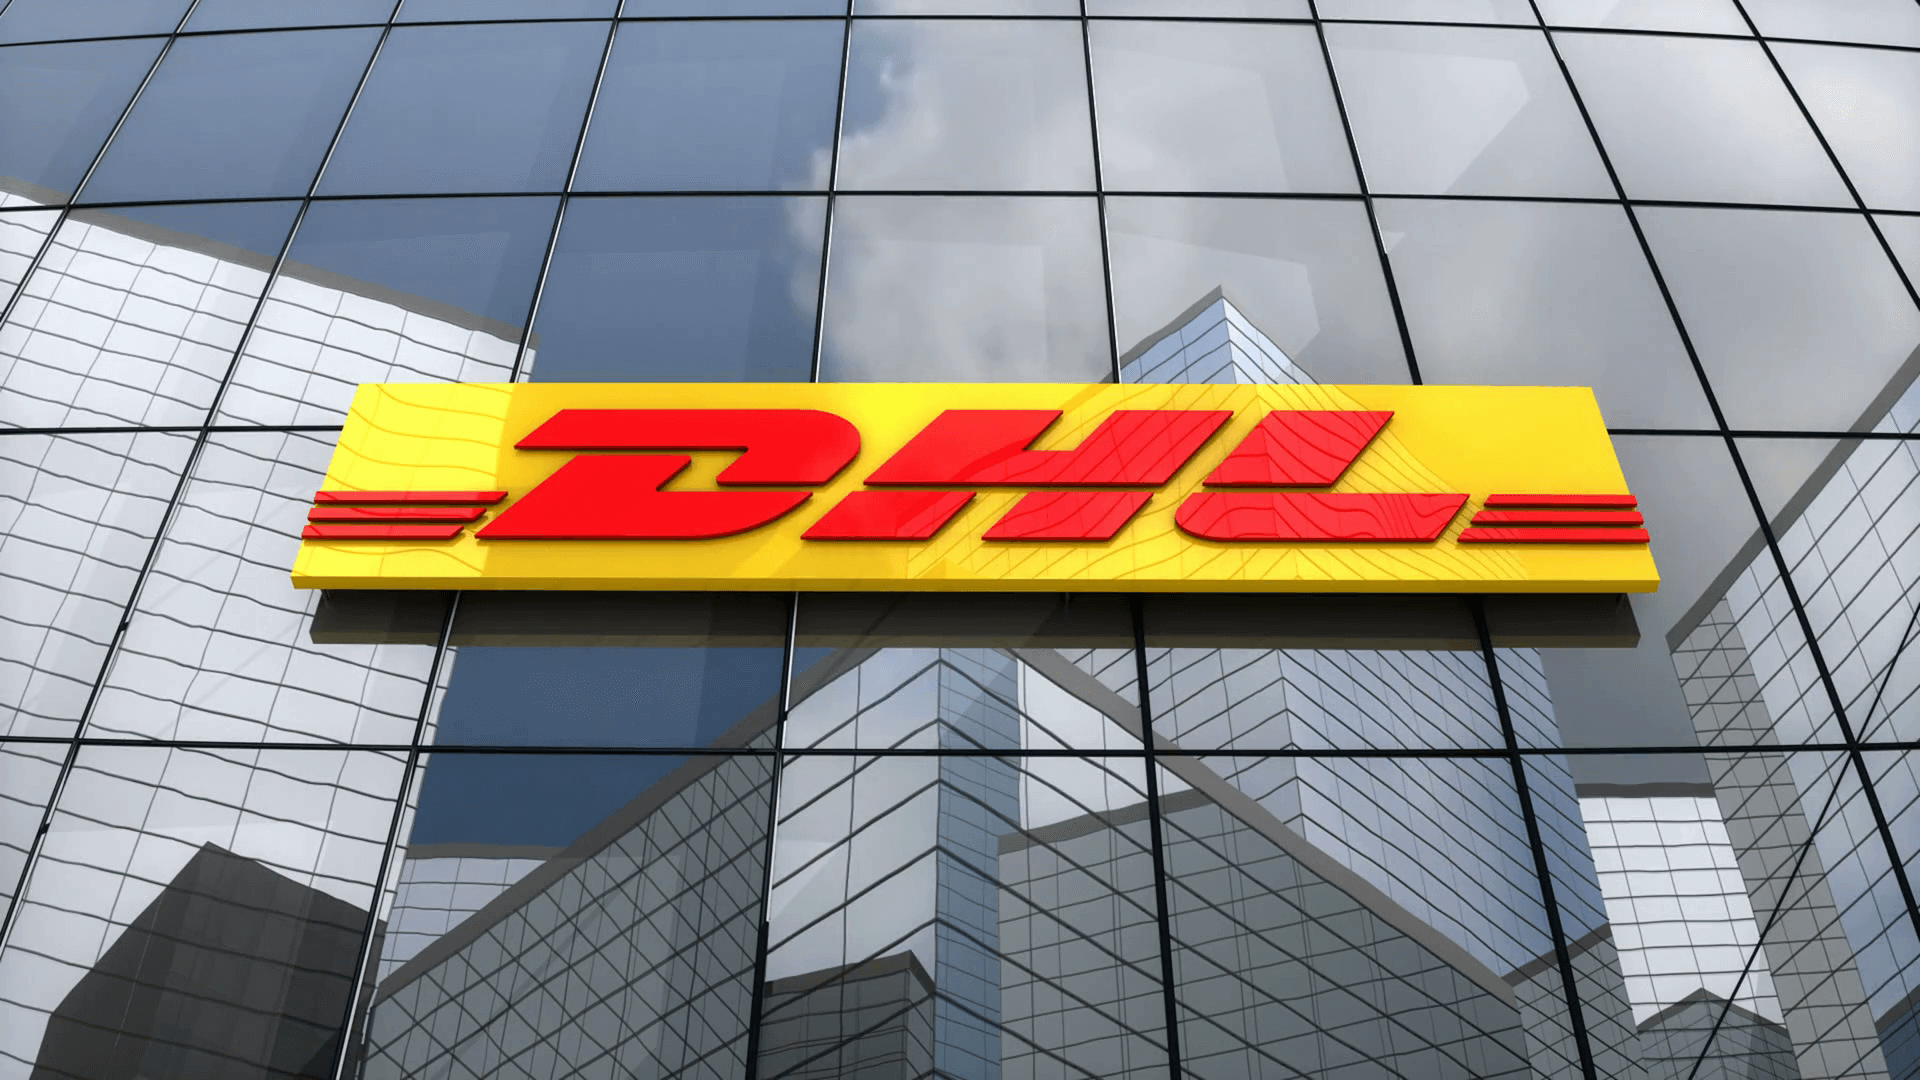 Dhl Locations Near Me >> Dhl Courier Near Me Dhl Near Me Dhl Chennai 91 79046